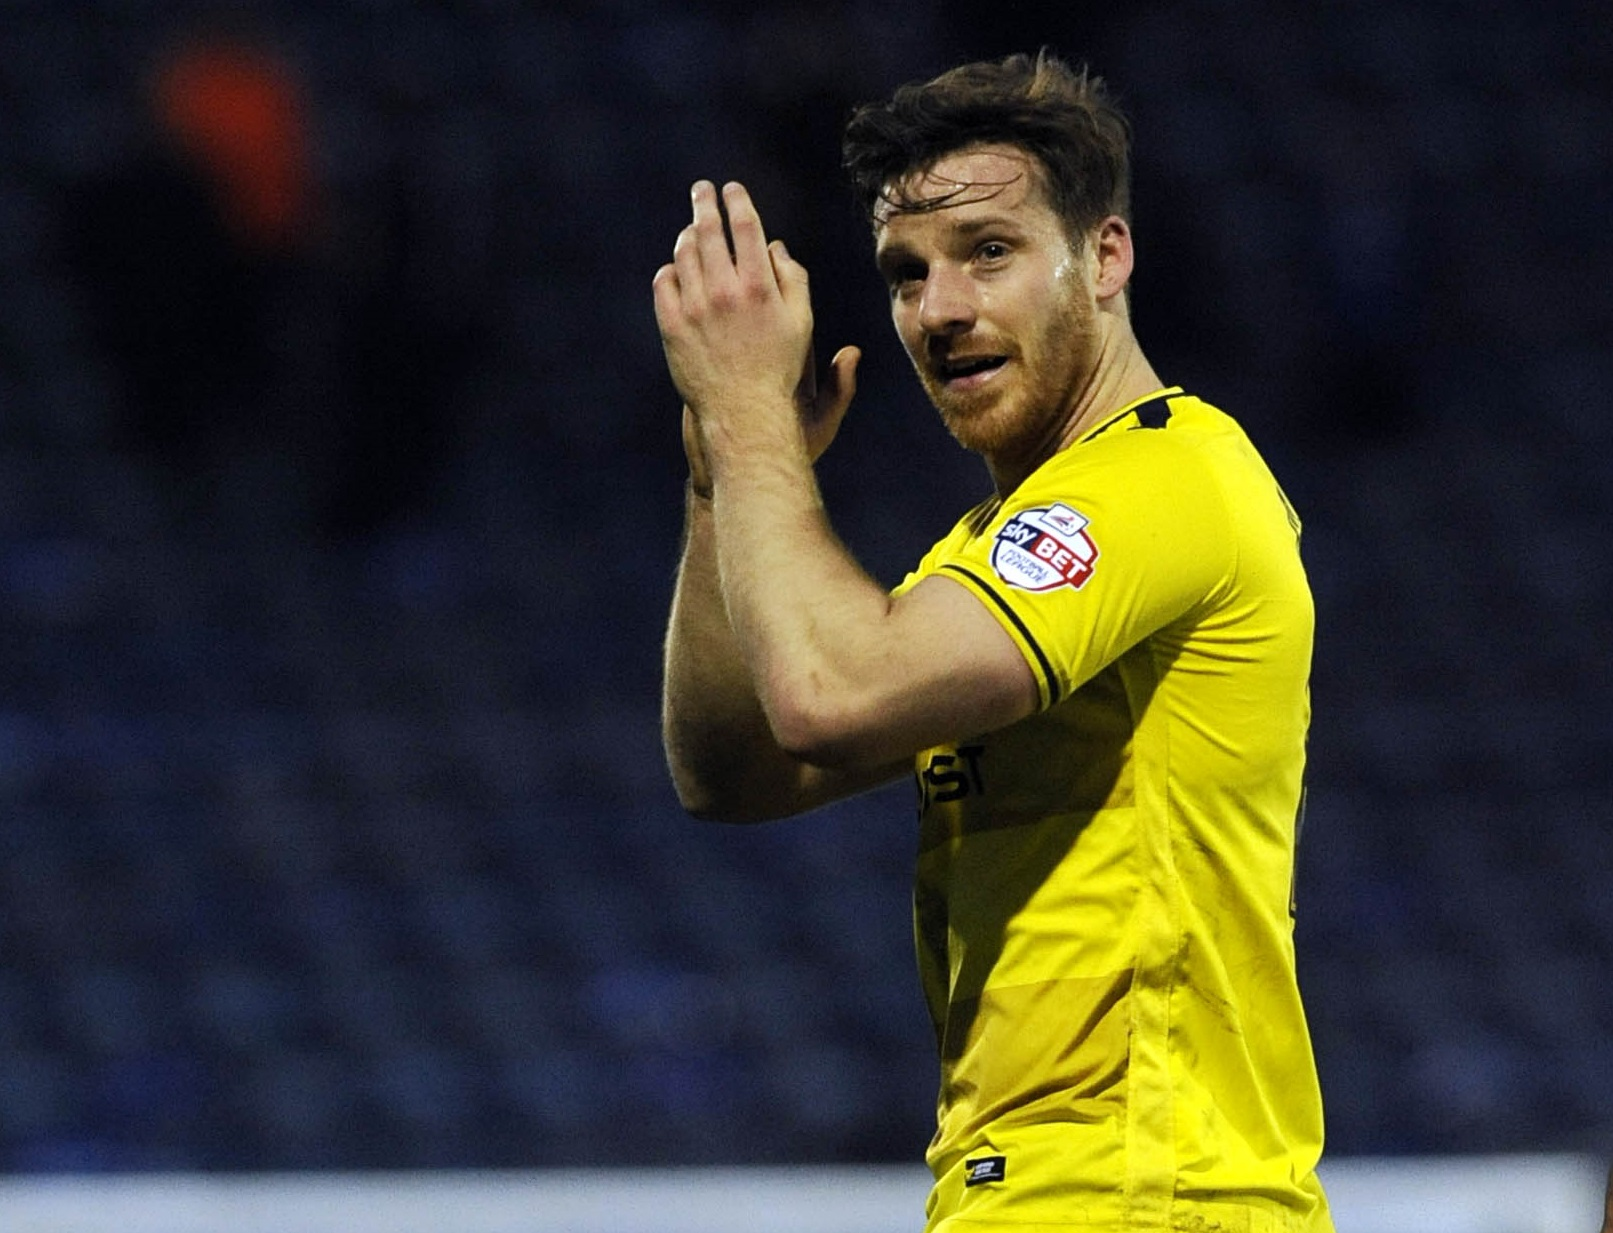 Johnny Mullins was not offered a new contract by Oxford United earlier this month